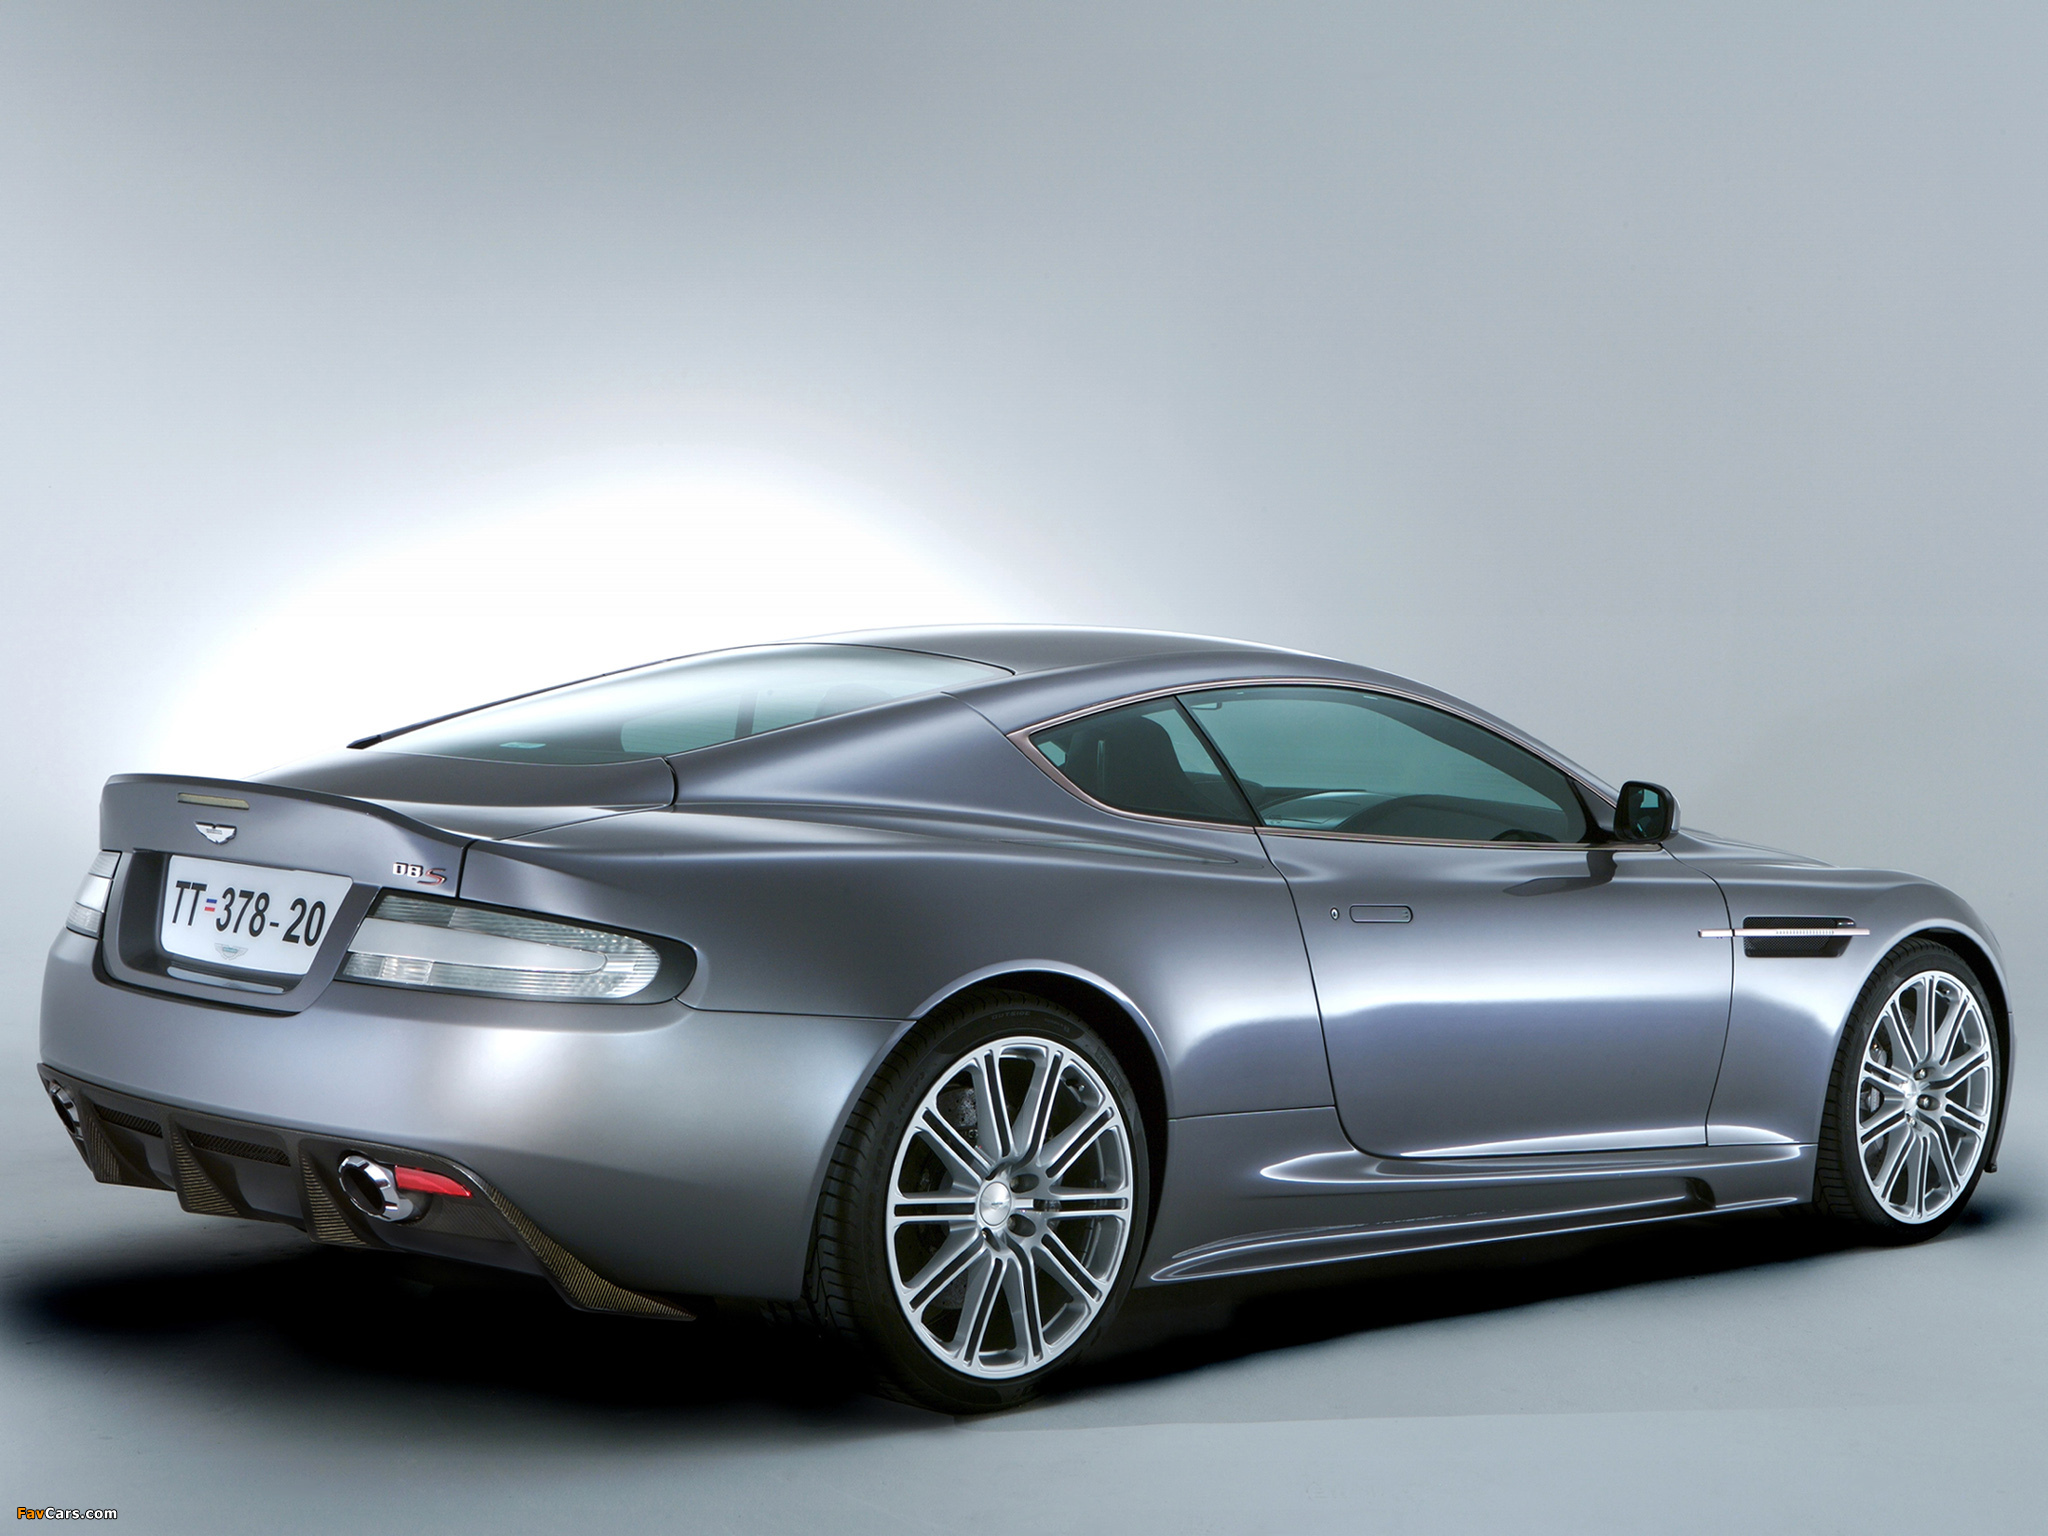 Images Of Aston Martin DBS Casino Royale - Aston martin casino royale